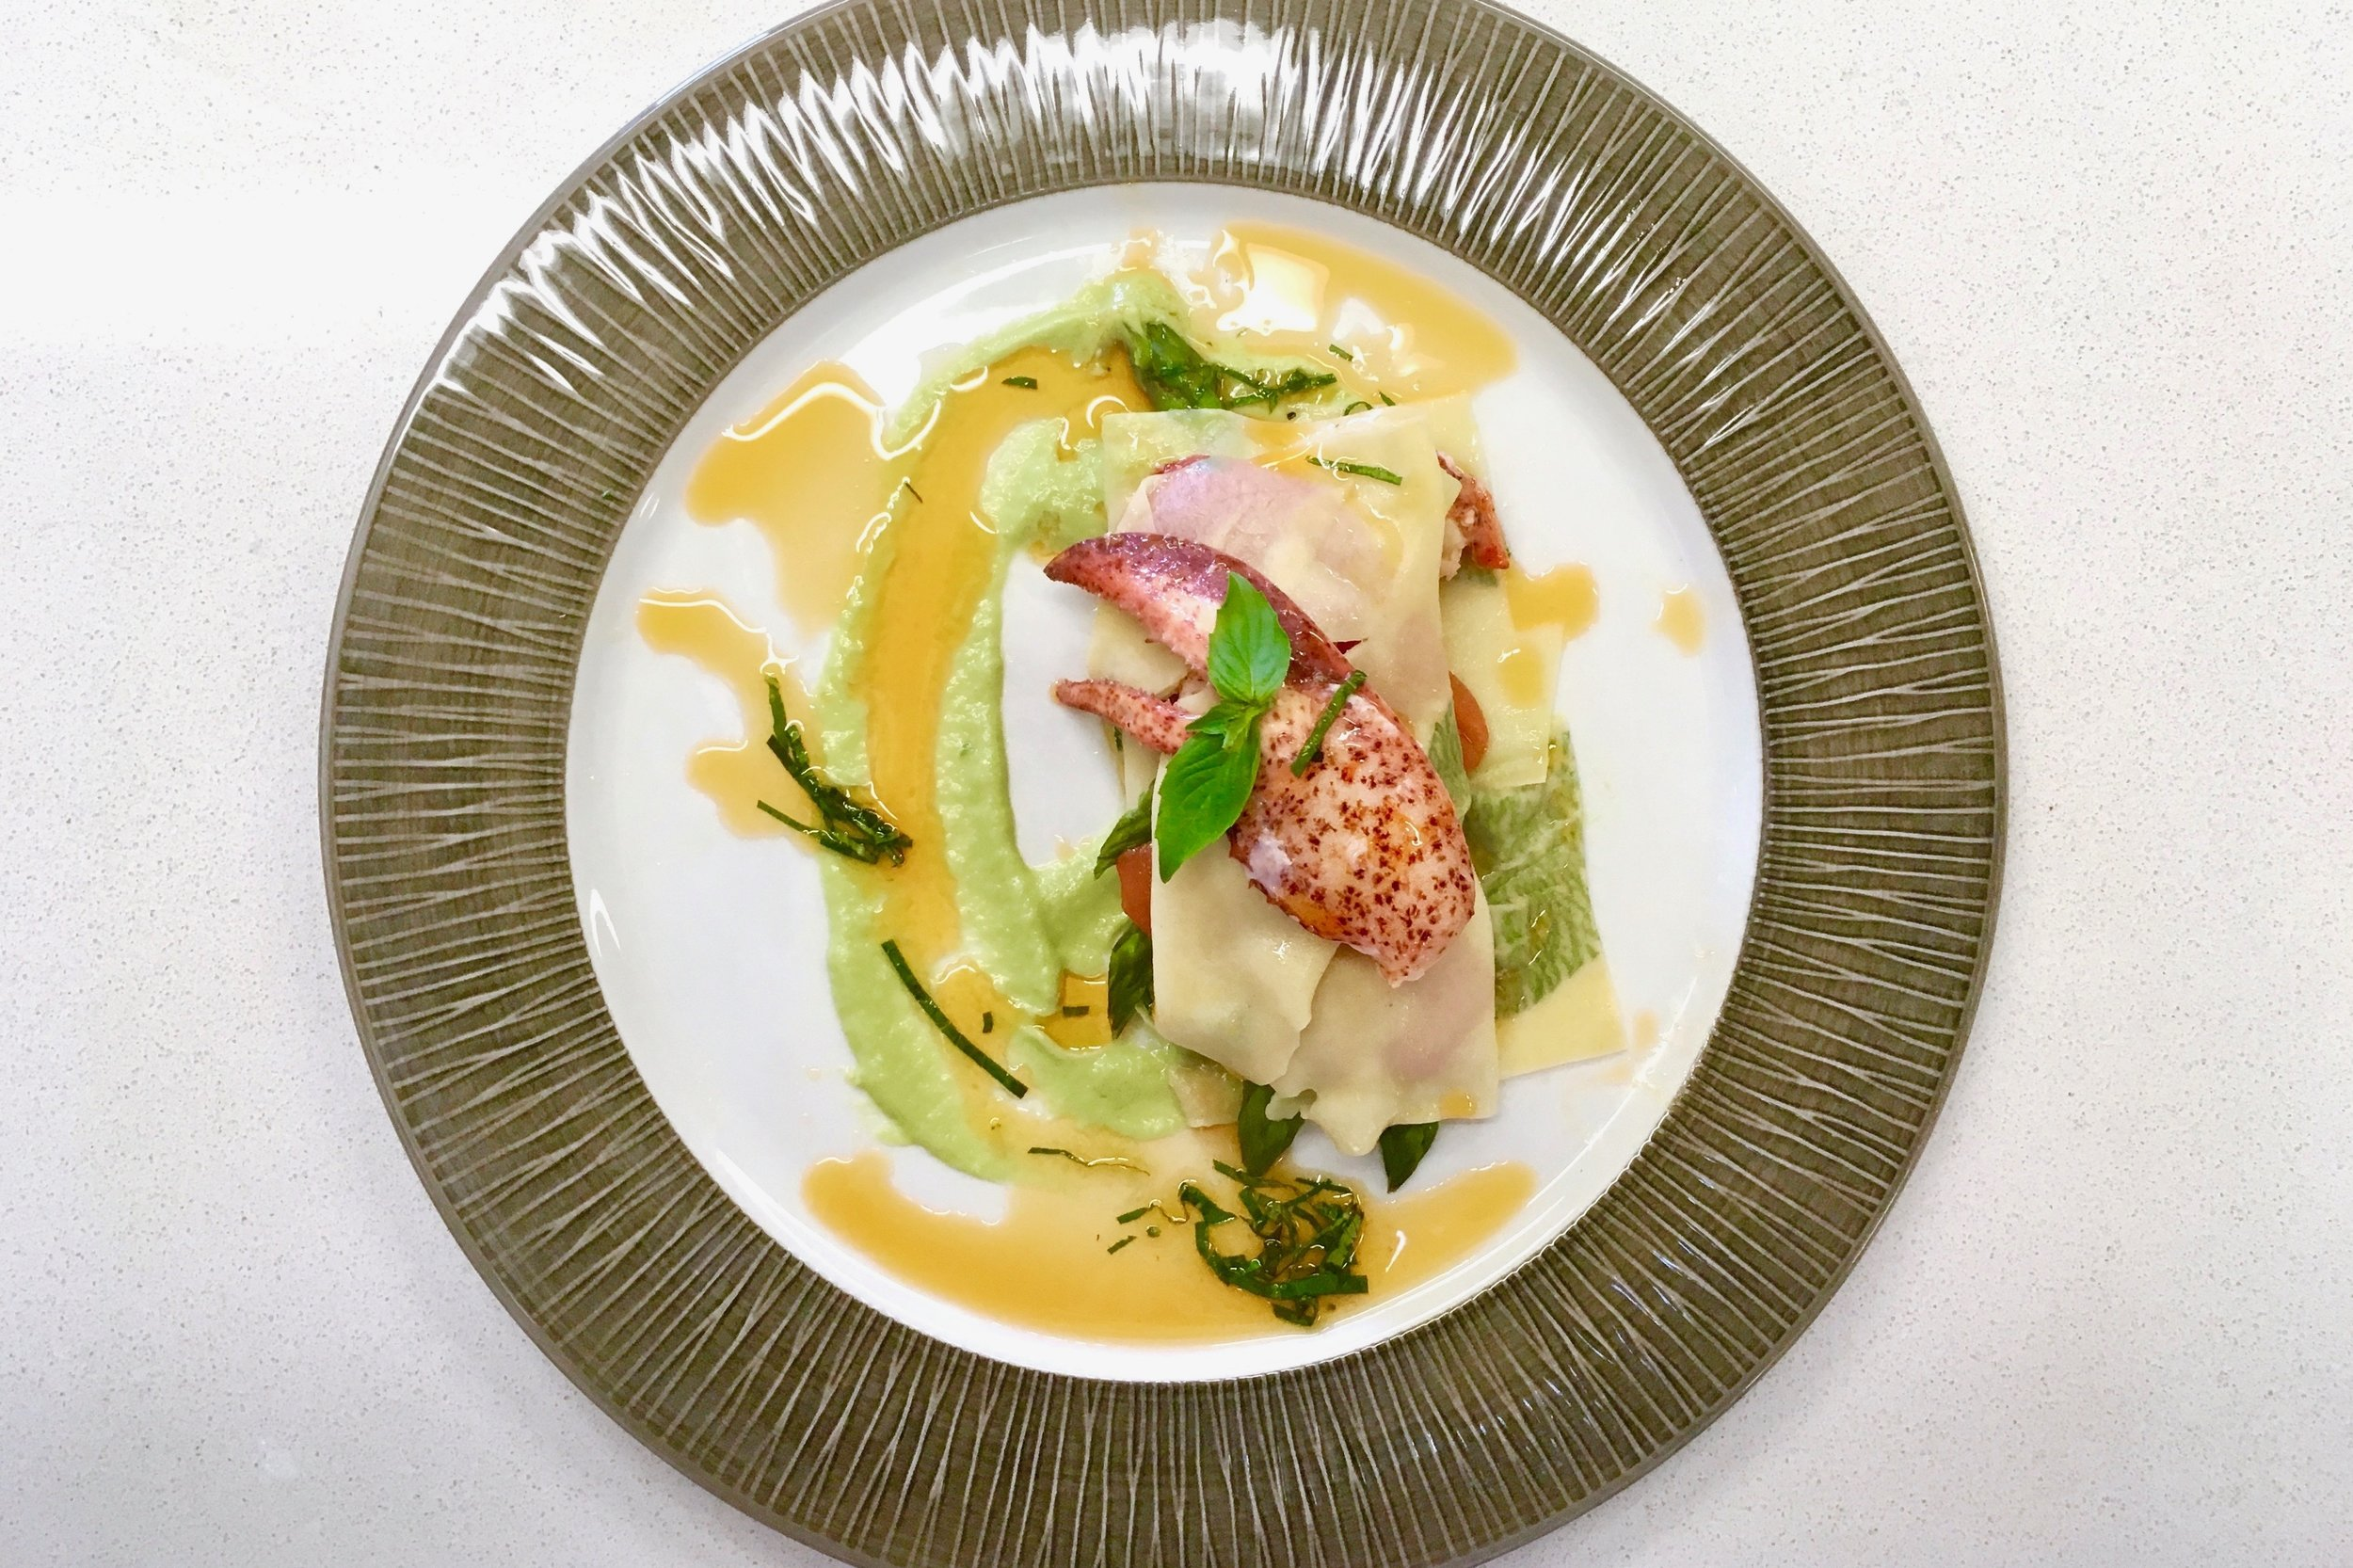 Chef's open lasagne of lobster